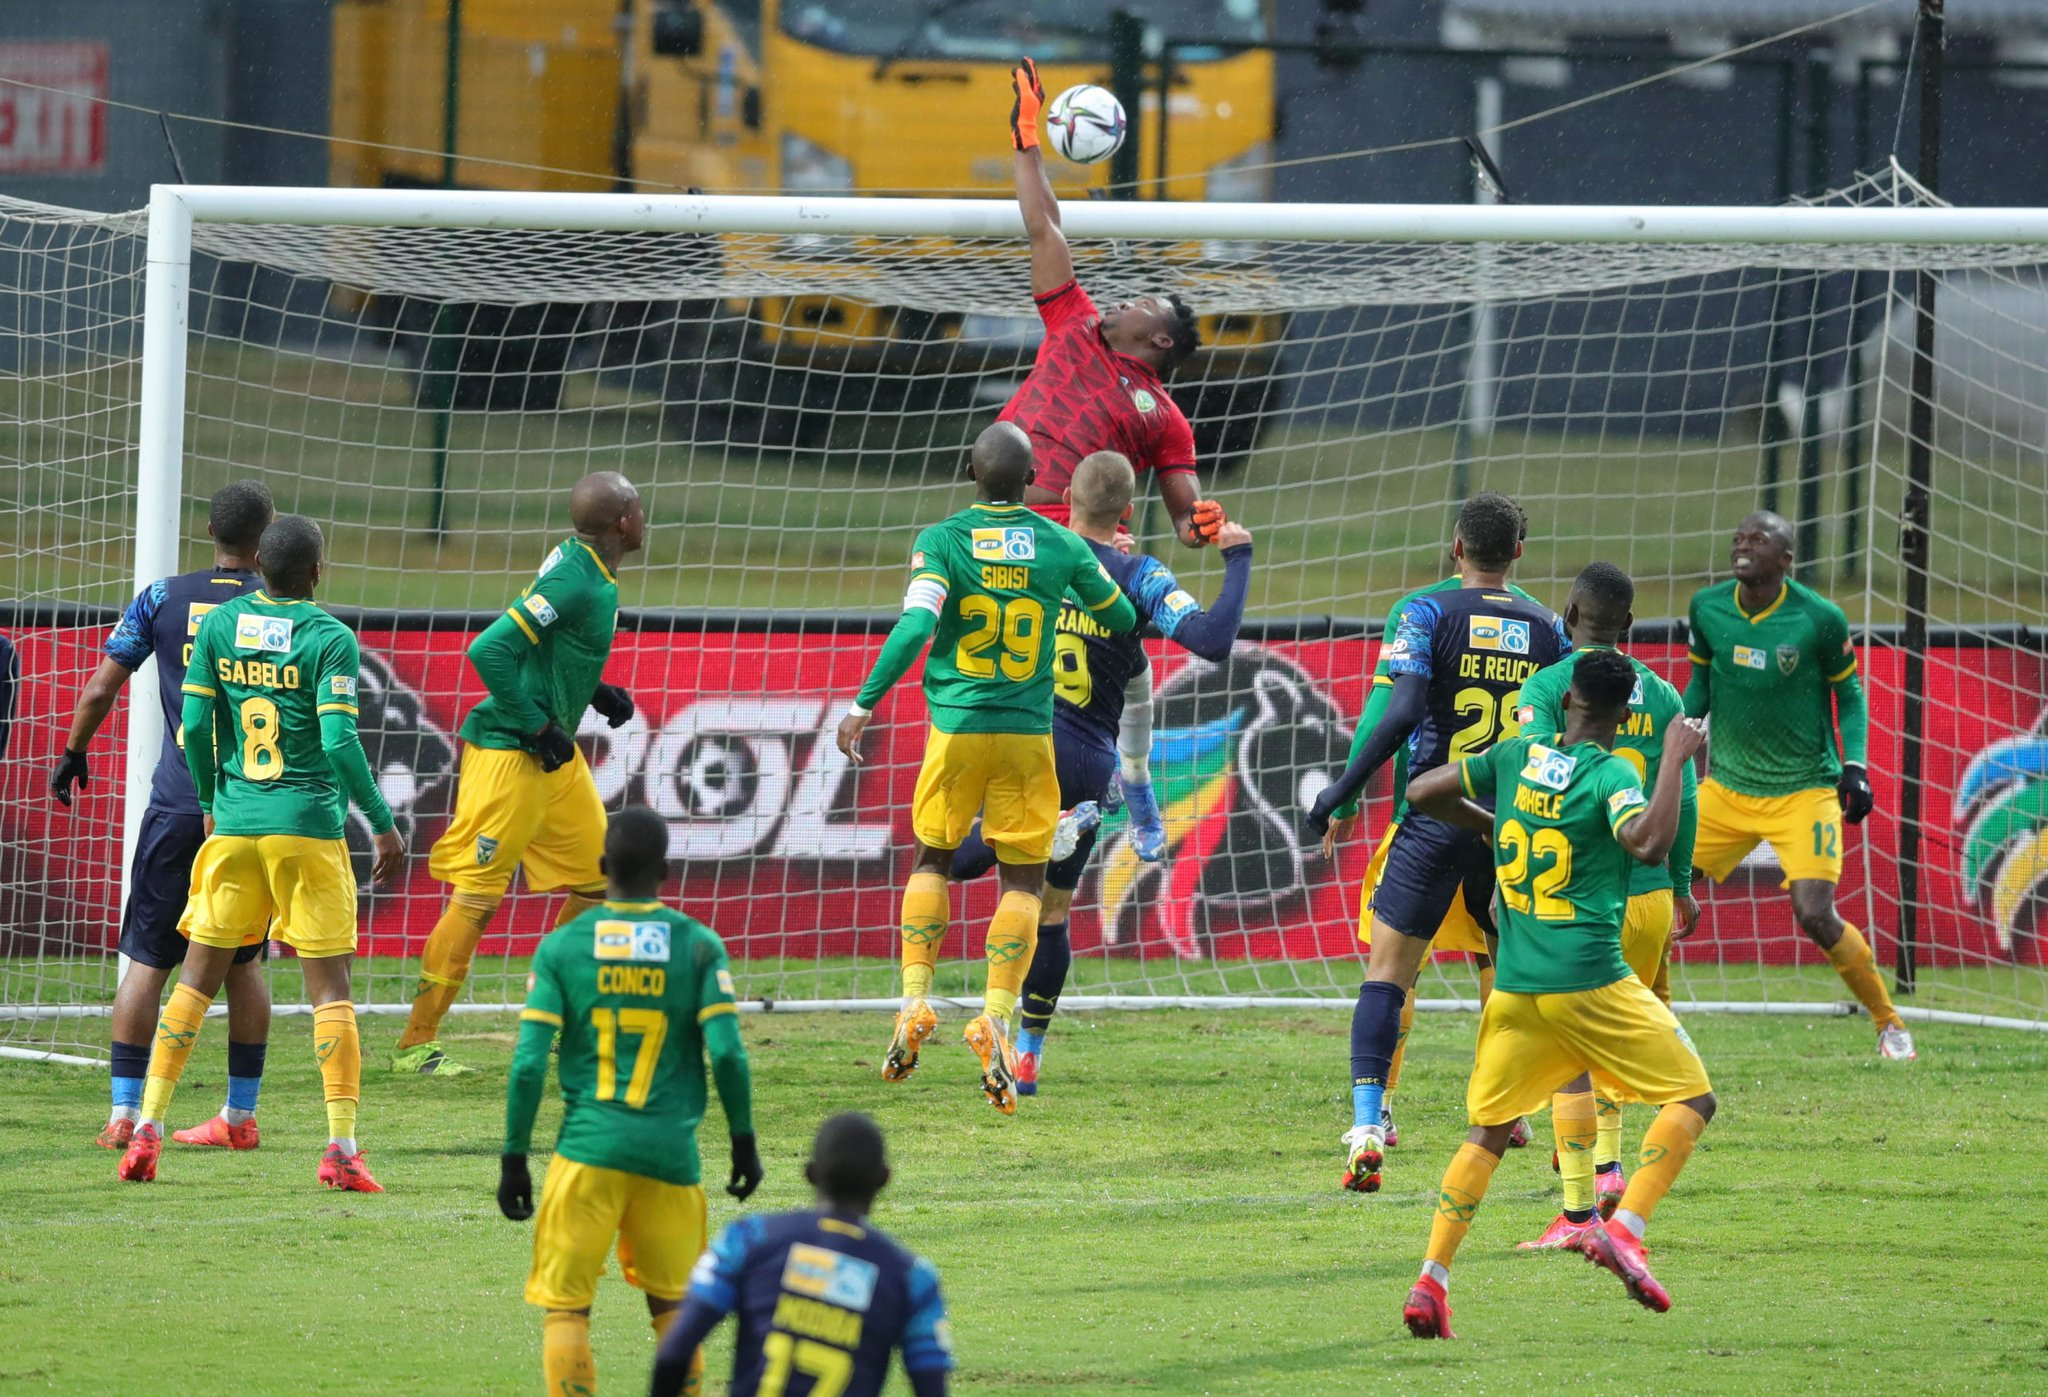 High stakes with Downs and Arrows to tussle for final spot